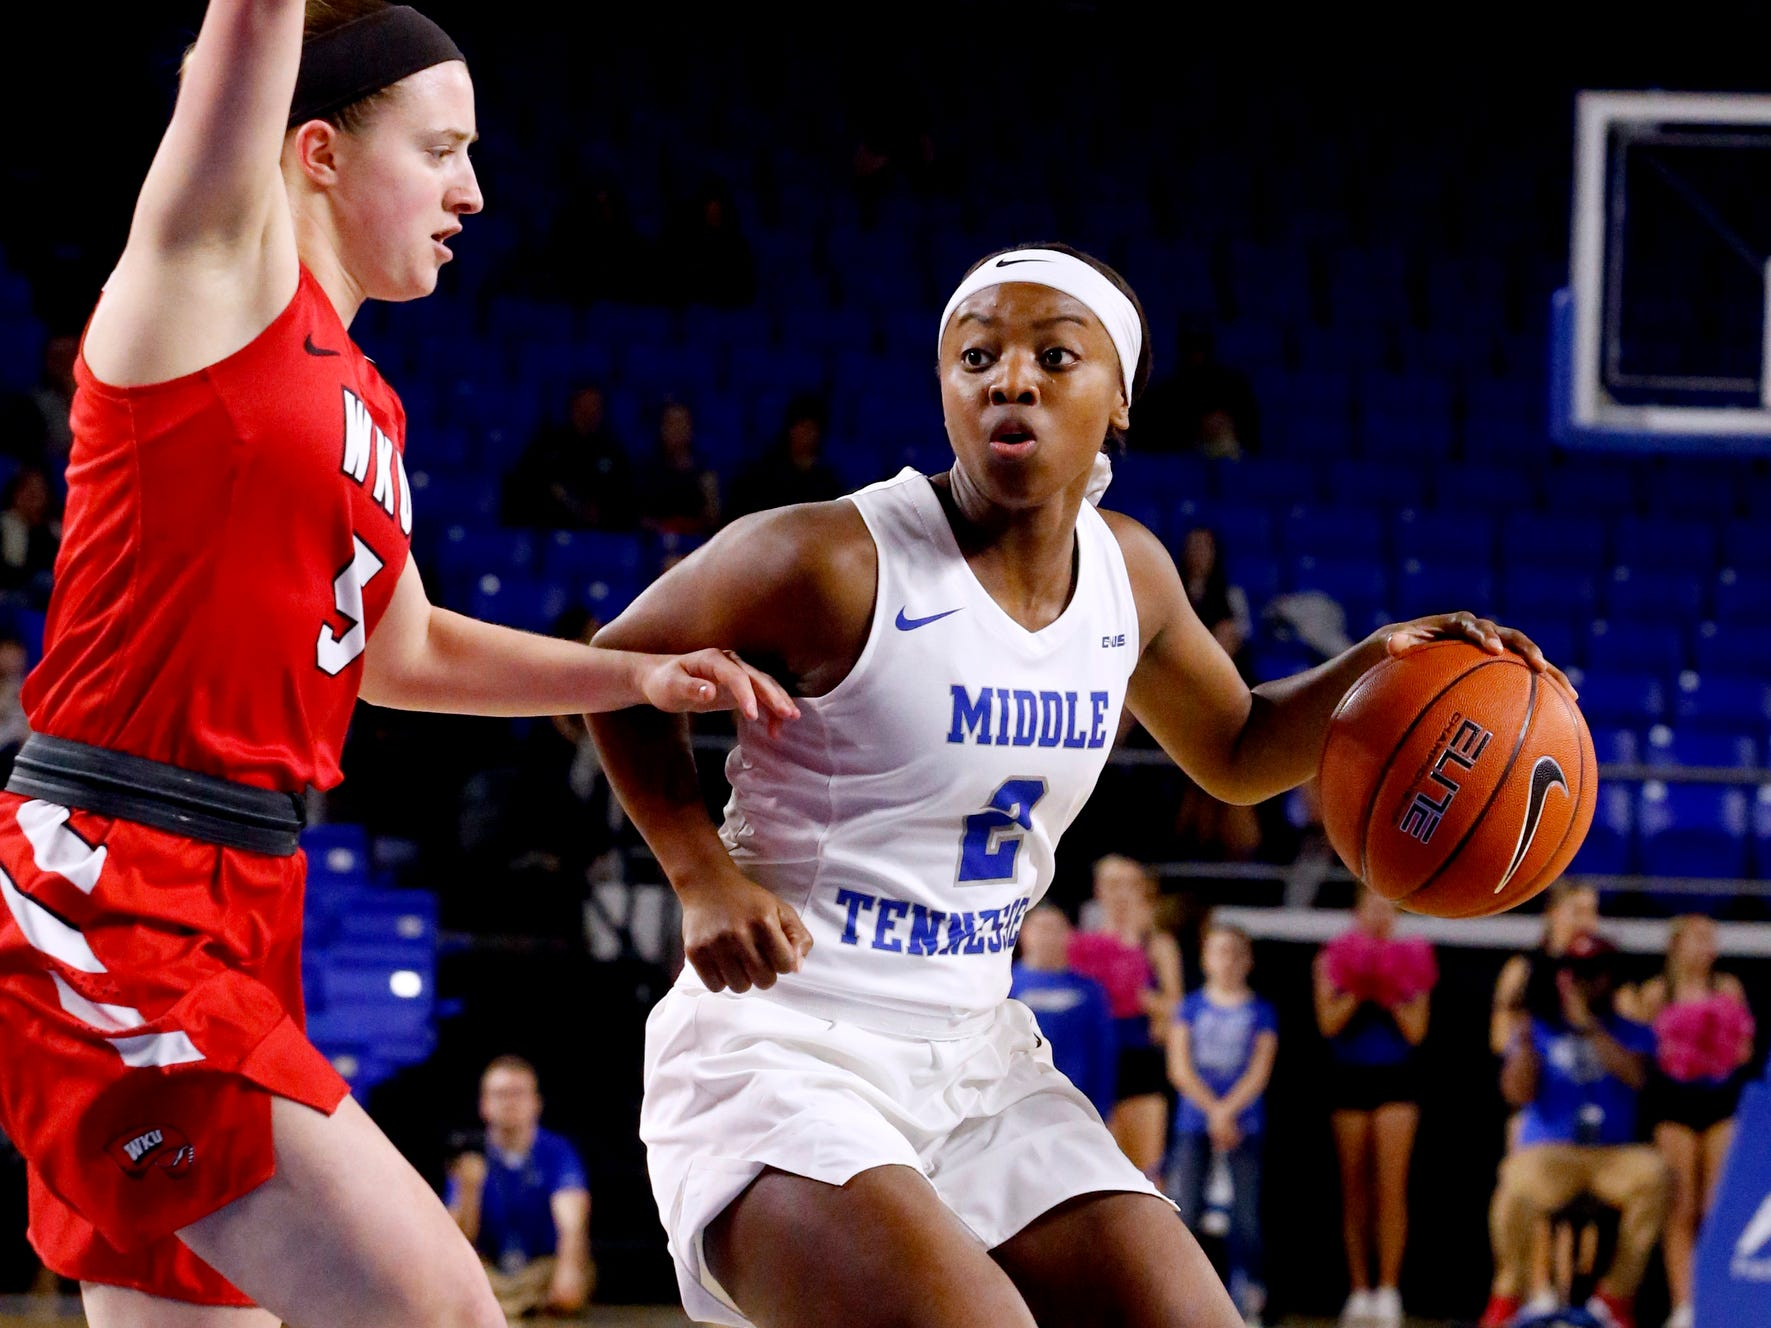 MTSU's guard Taylor Sutton (2) looks for a opening as Western's guard Whitney Creech (5) guards her on Thursday, Feb. 14, 2019.